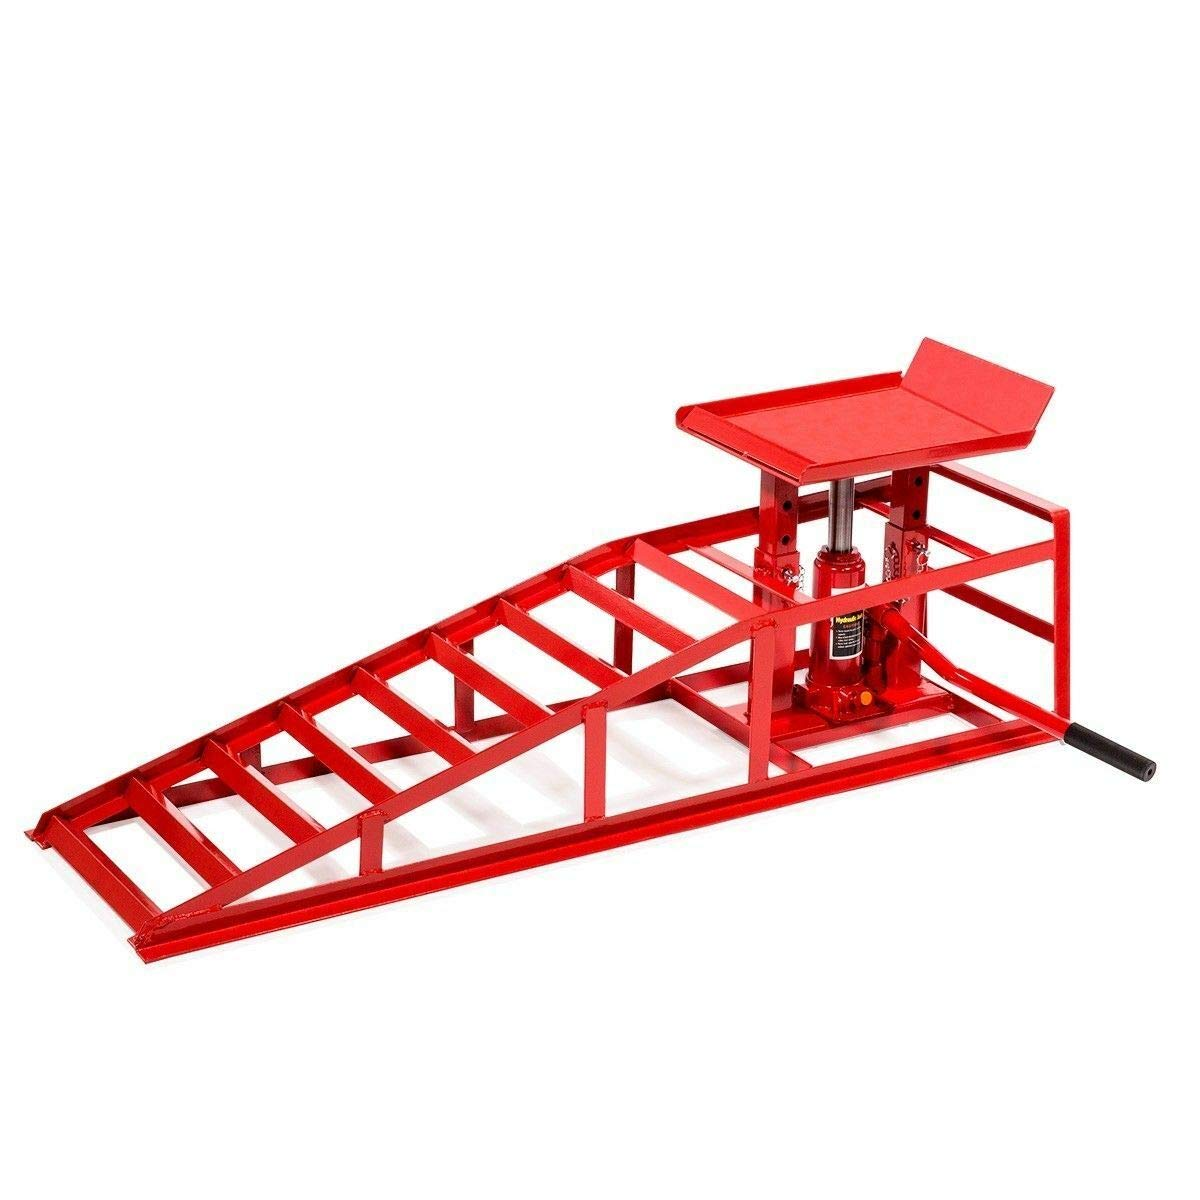 Important Tools, Perfect for All Under-Vehicle Maintenance, 5 Ton Auto Car Truck Service Ramps Lifts Heavy Duty Hydraulic Lift Repair Frame Red